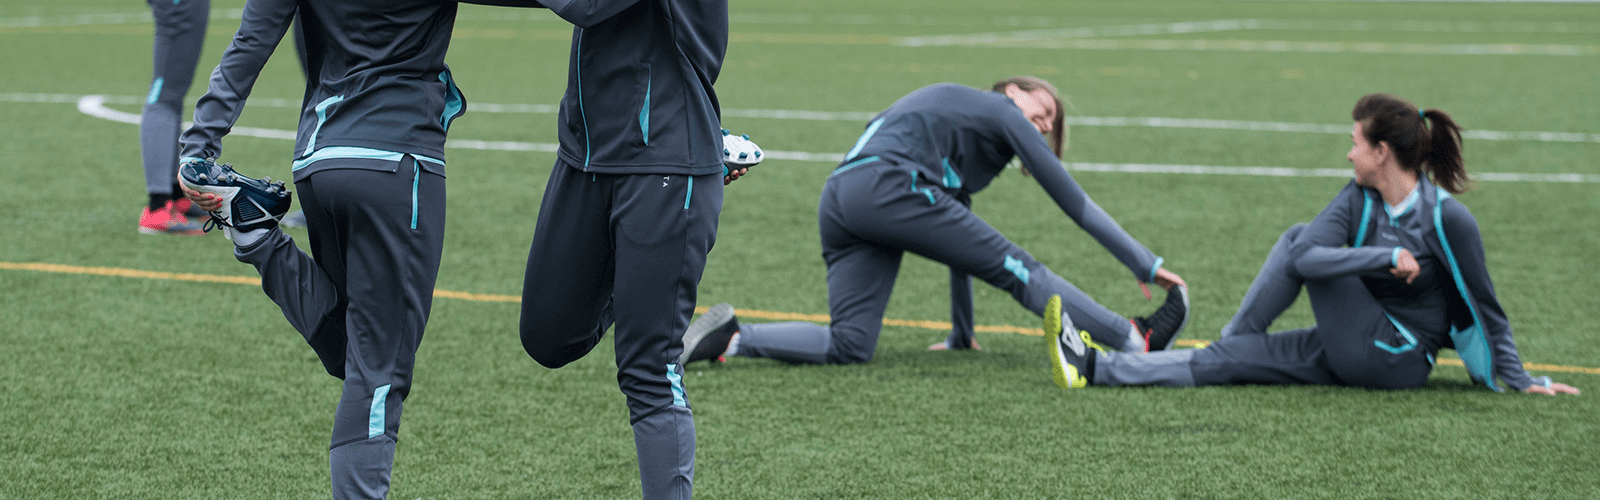 When Should You Stretch During Football?